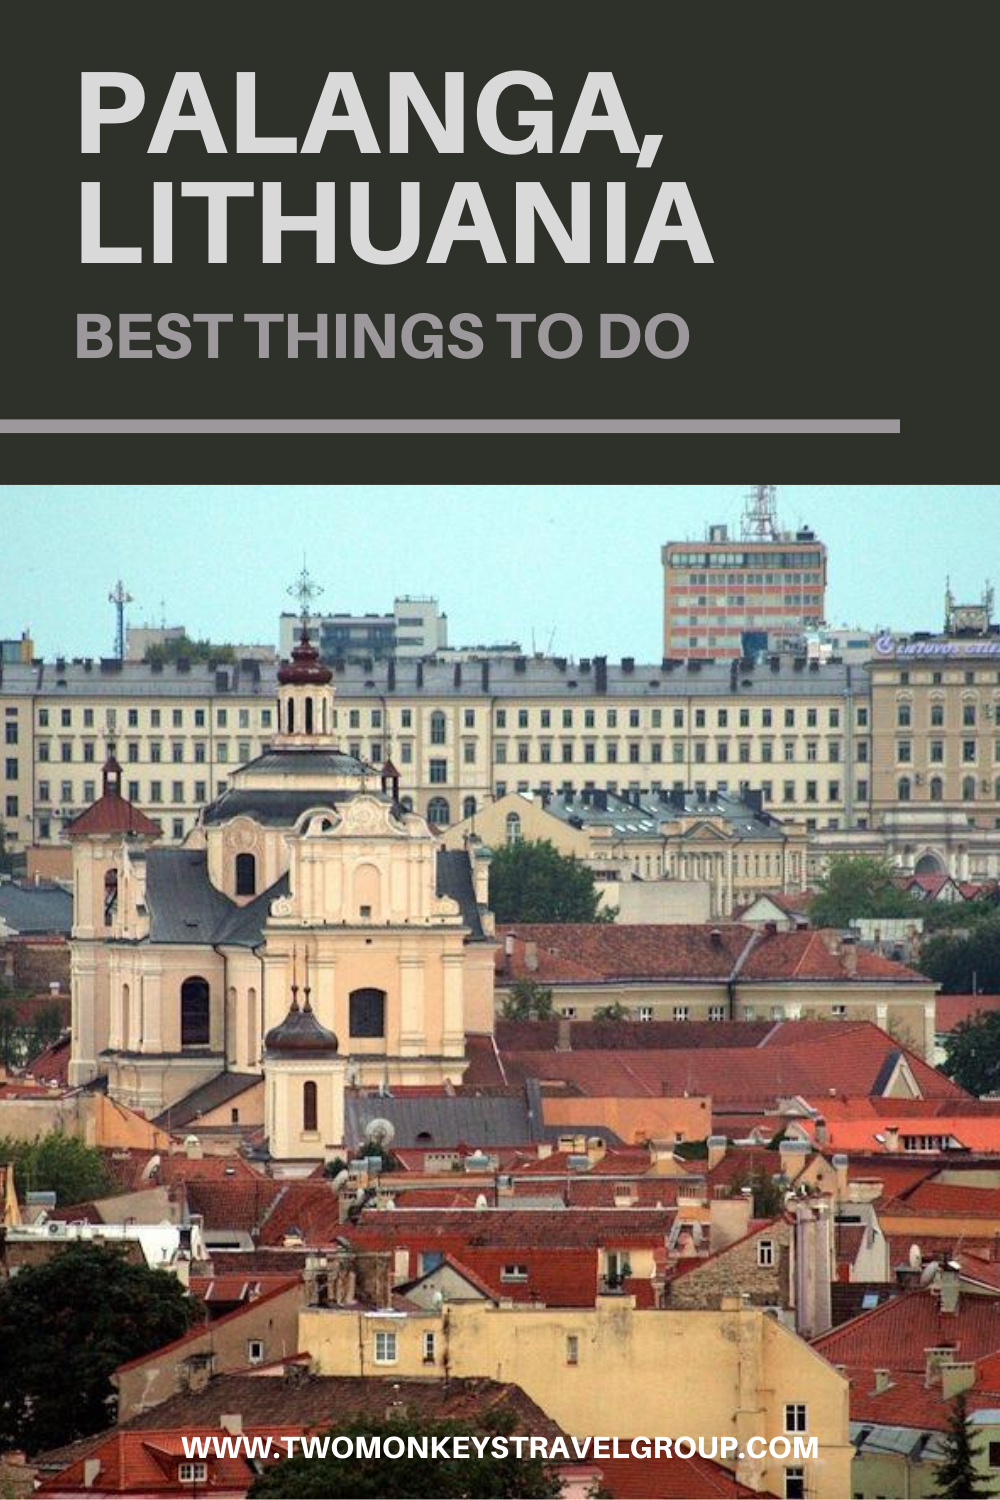 15 Best Things To Do in Palanga, Lithuania